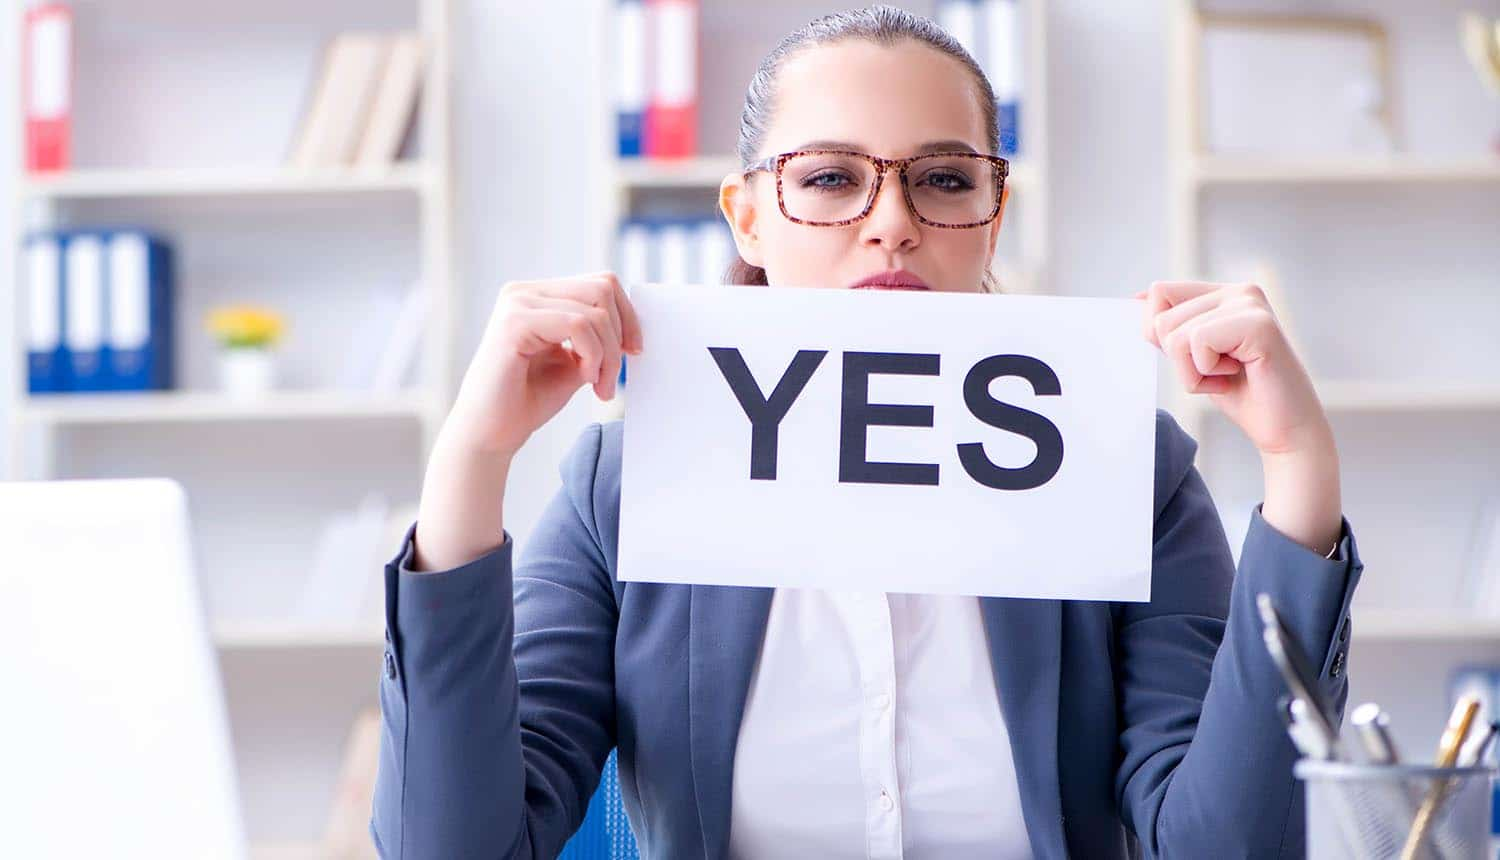 Businesswoman holding up Yes message showing privacy consent